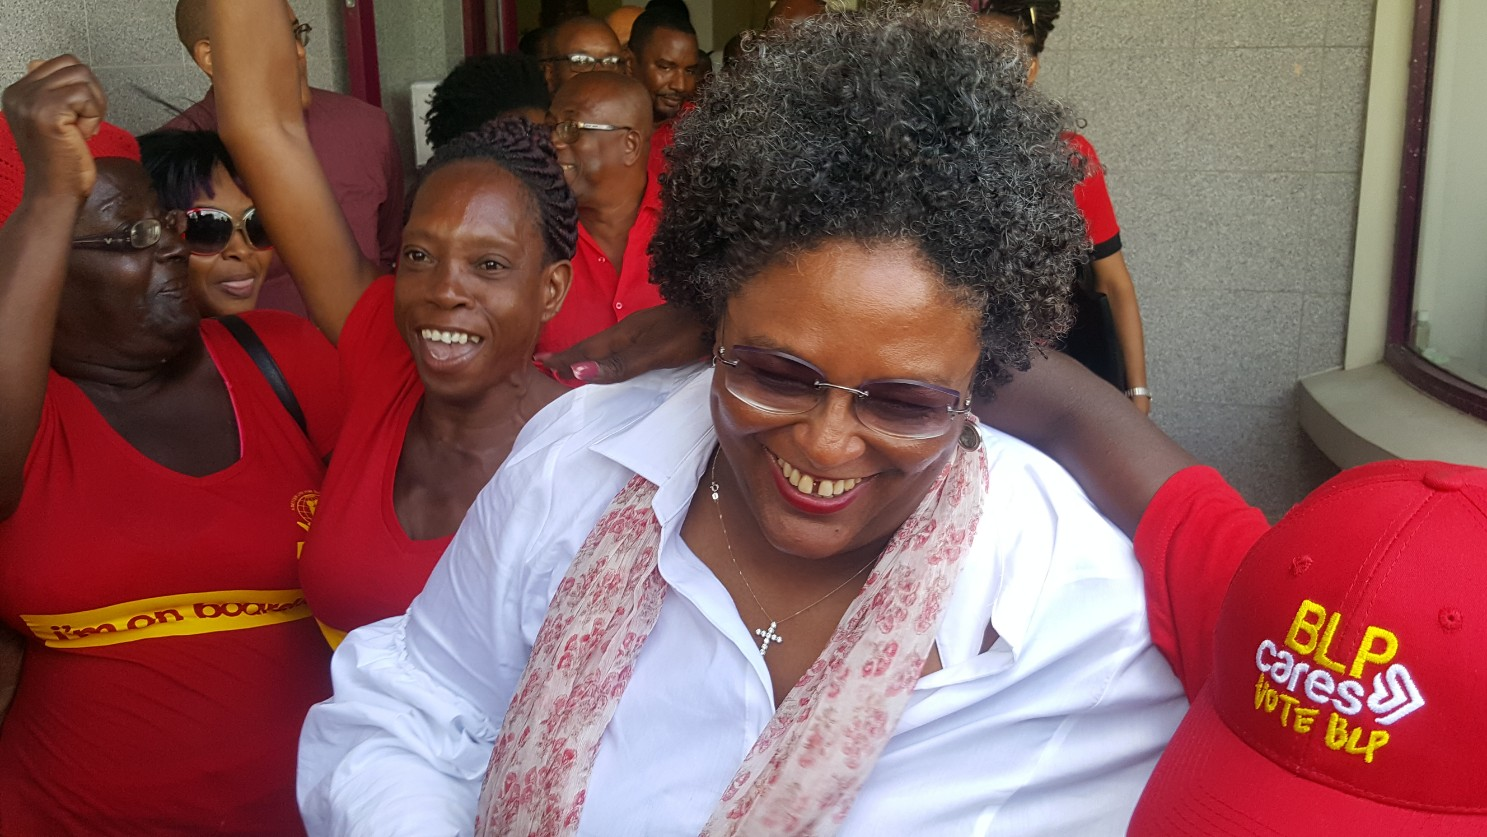 'BLP cares' was more than a catchy slogan. (FILE)